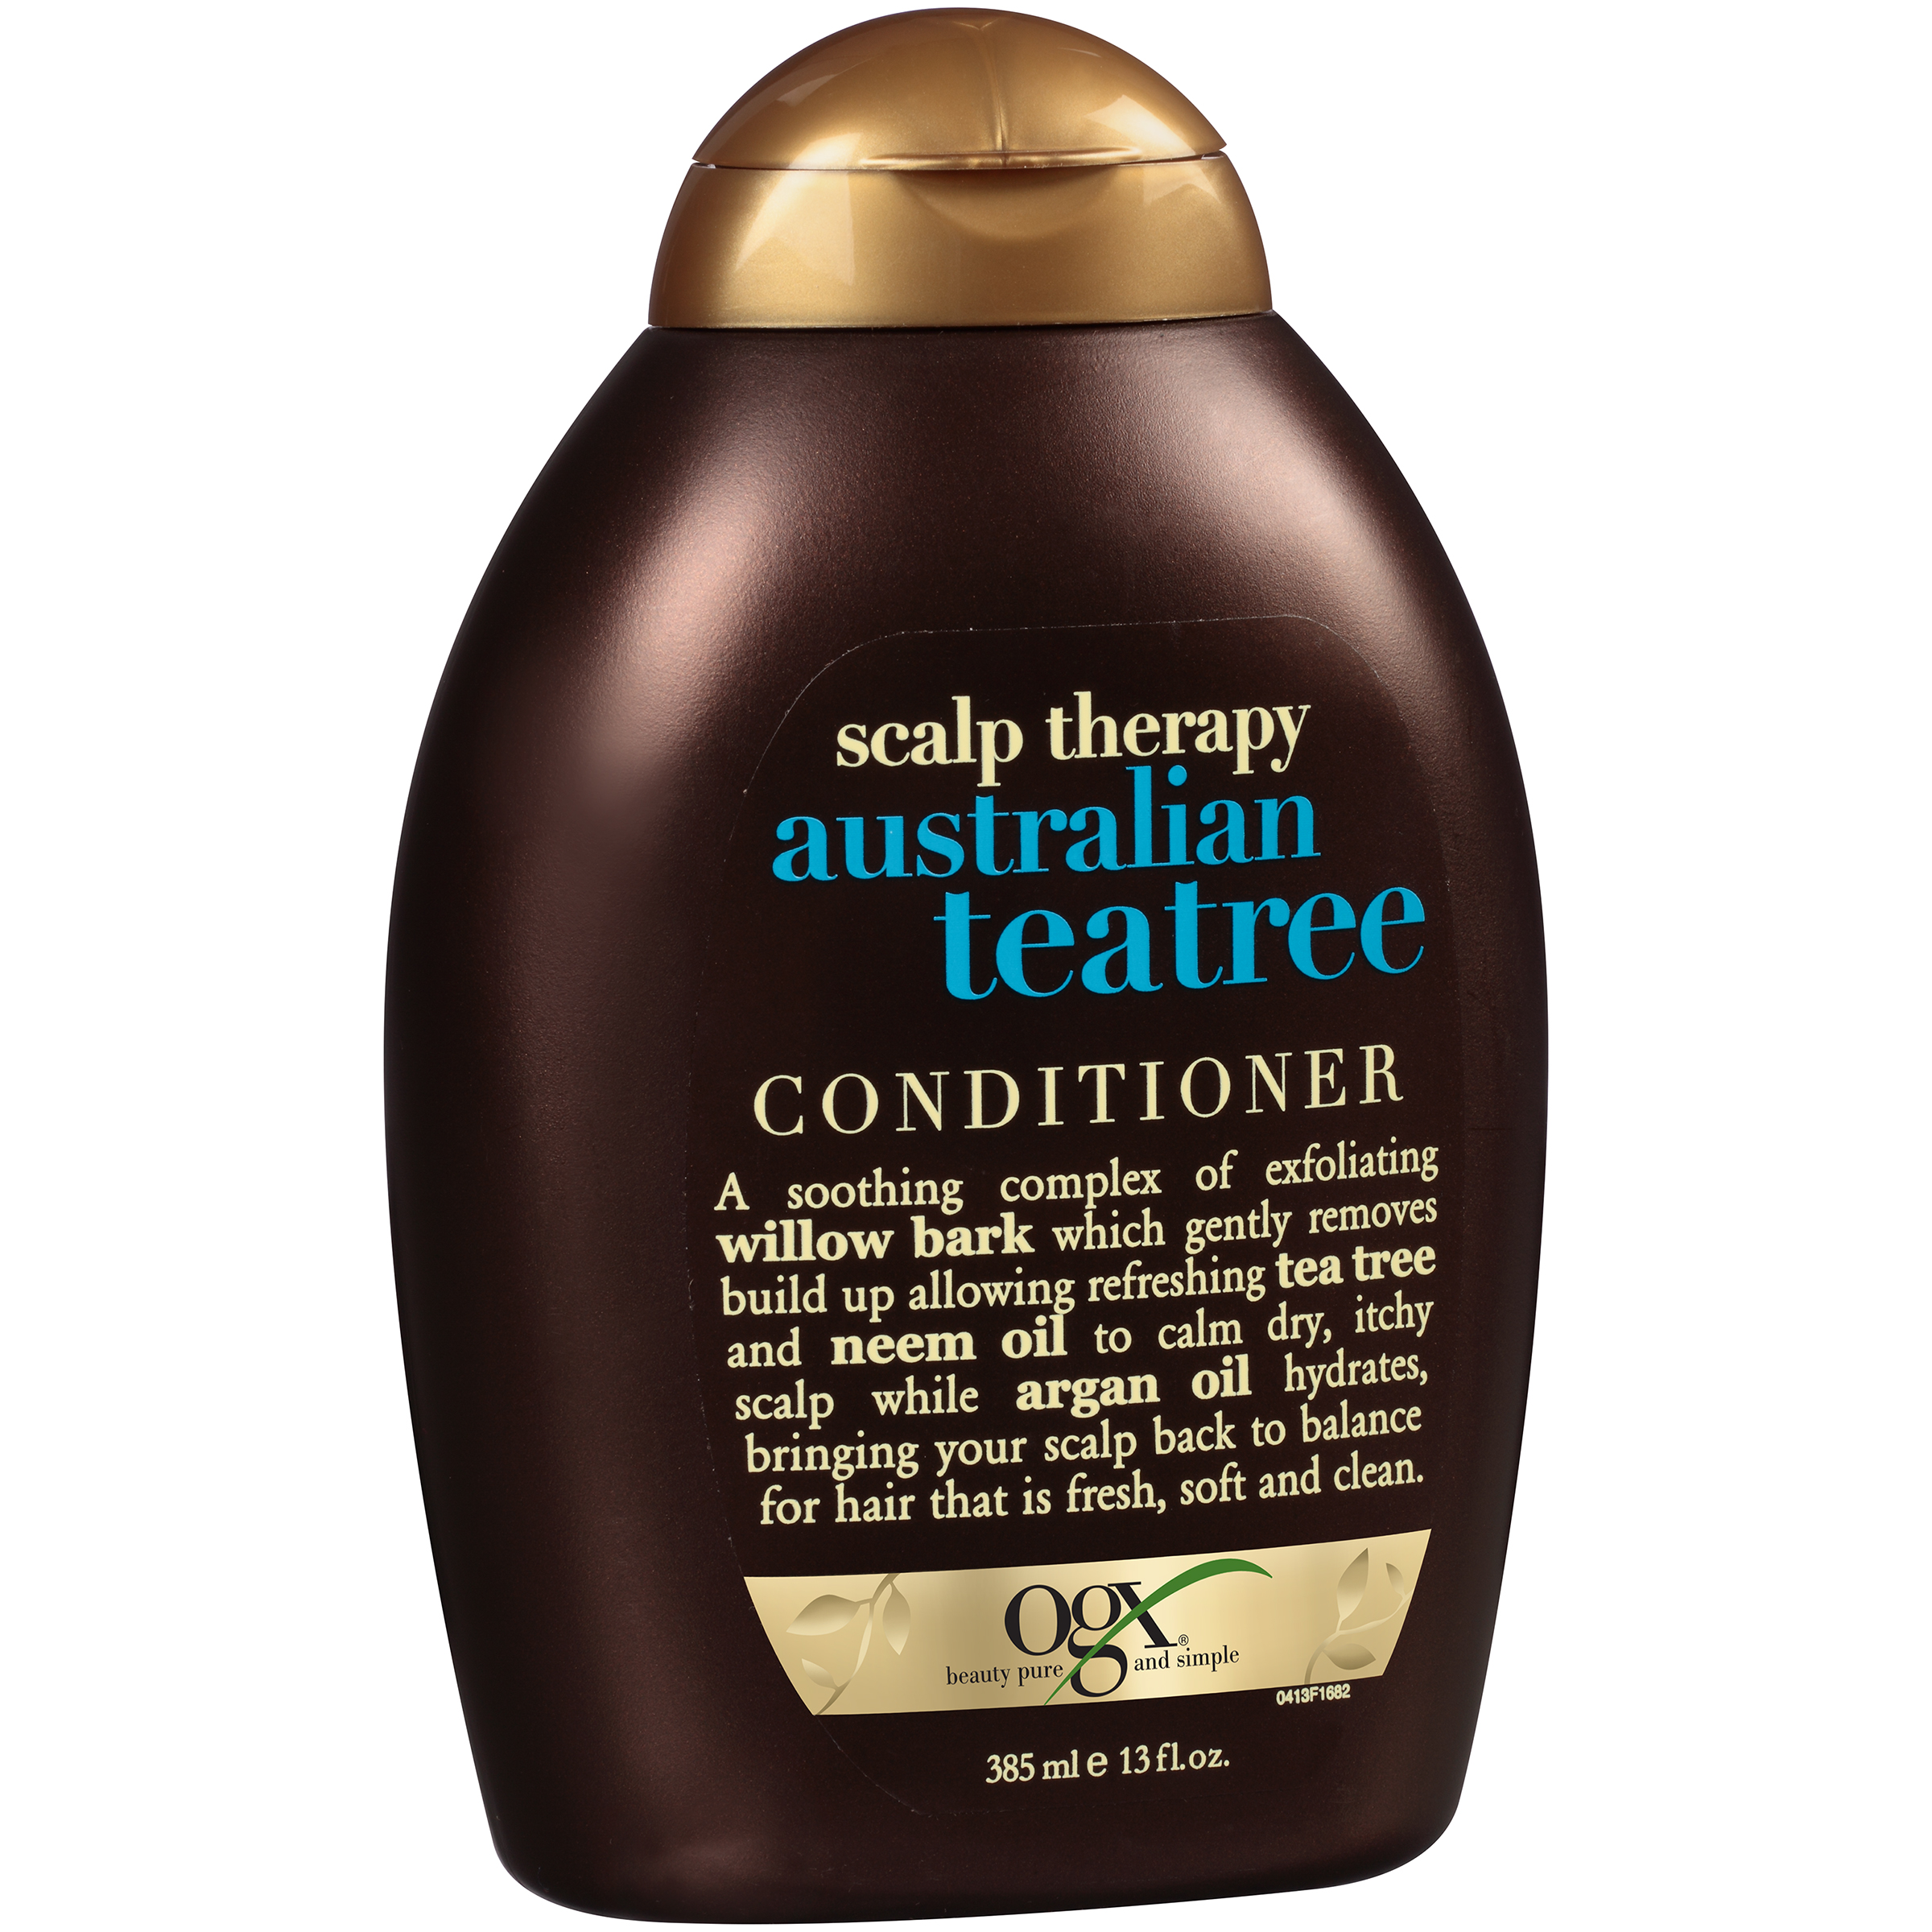 OGX�� Scalp Therapy Australian Teatree Conditioner 13 fl. oz. Squeeze Bottle